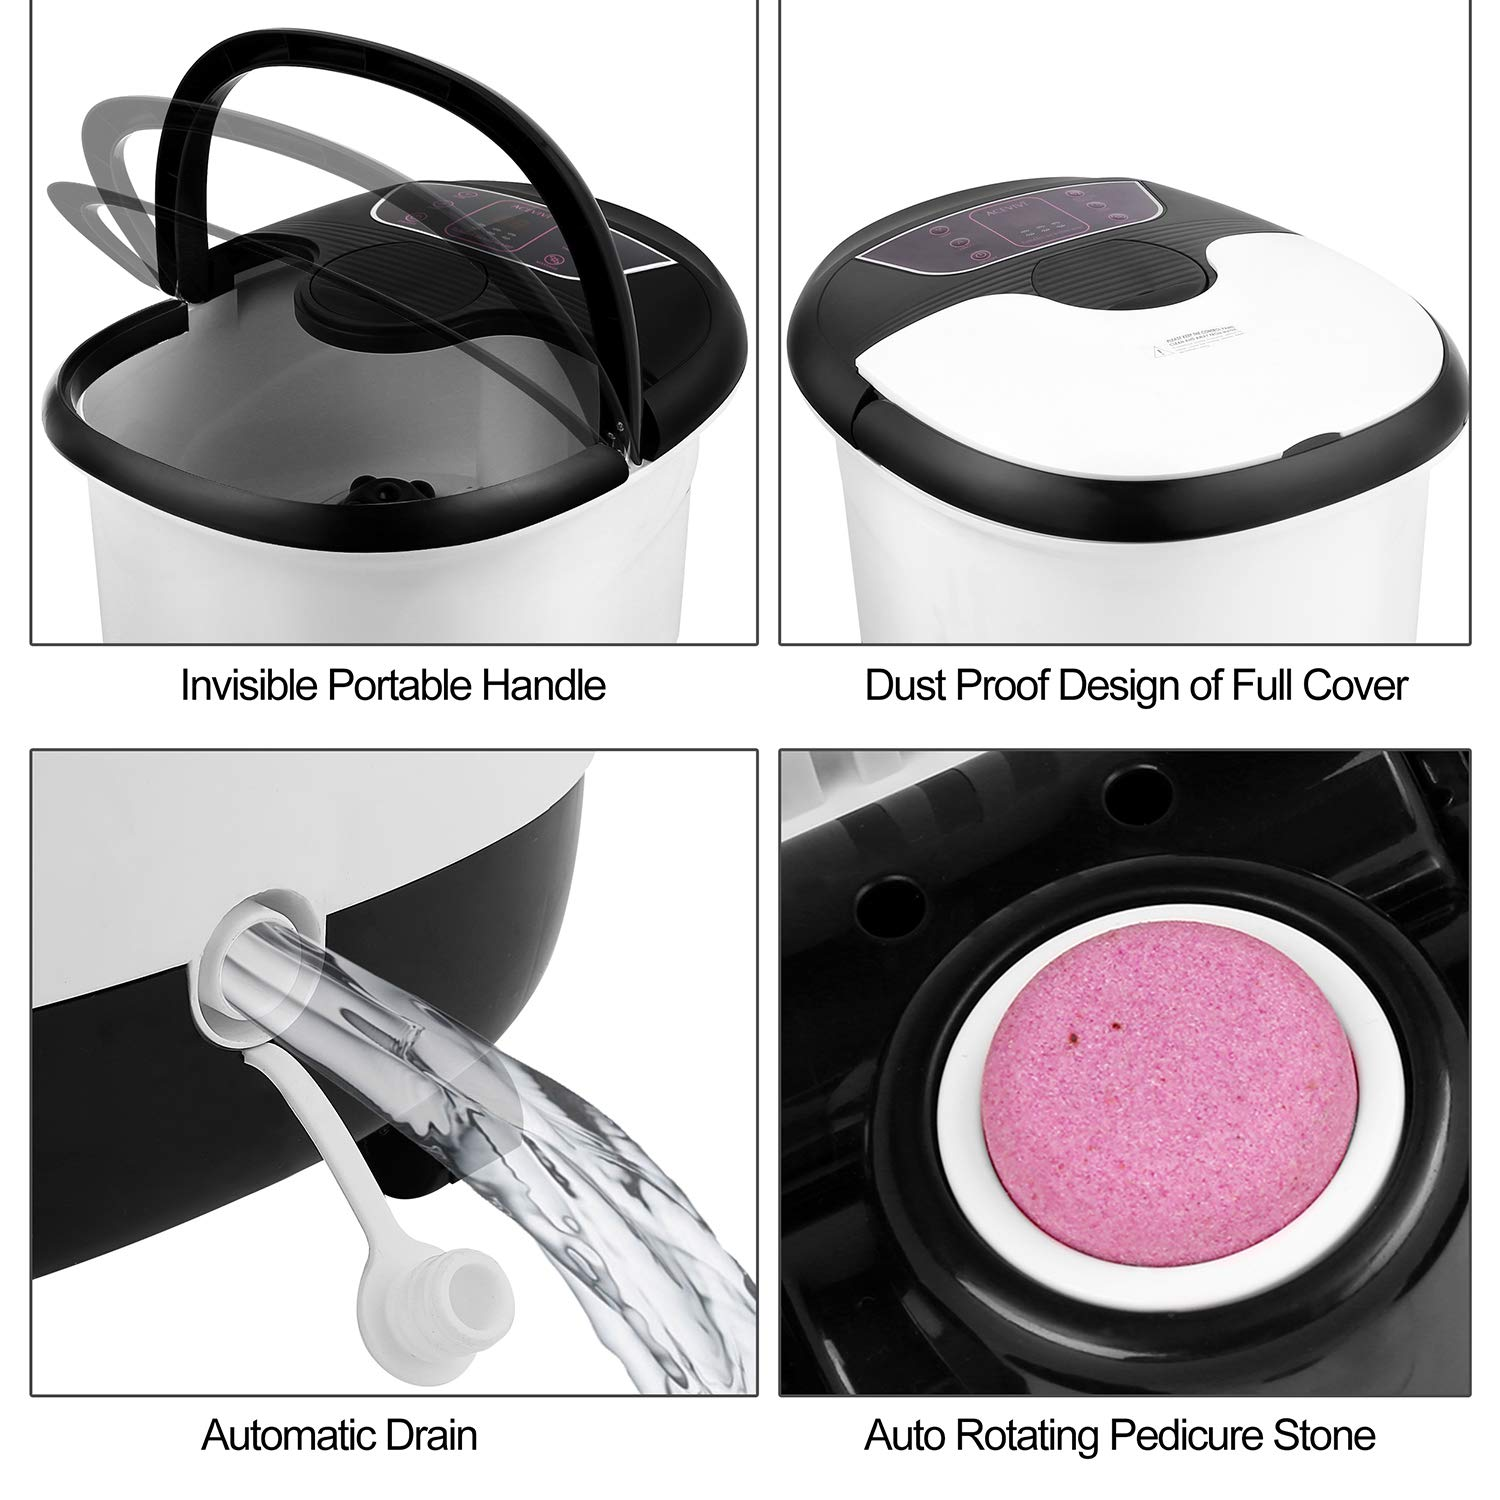 Foot Spa Bath Massager with Heat and Motorized Rollers, Deep Foot Bath Bucket with Pedicure Stone and Bubble Surging, Rolling Massage, Timer & Temperature for Foot Relief: Beauty